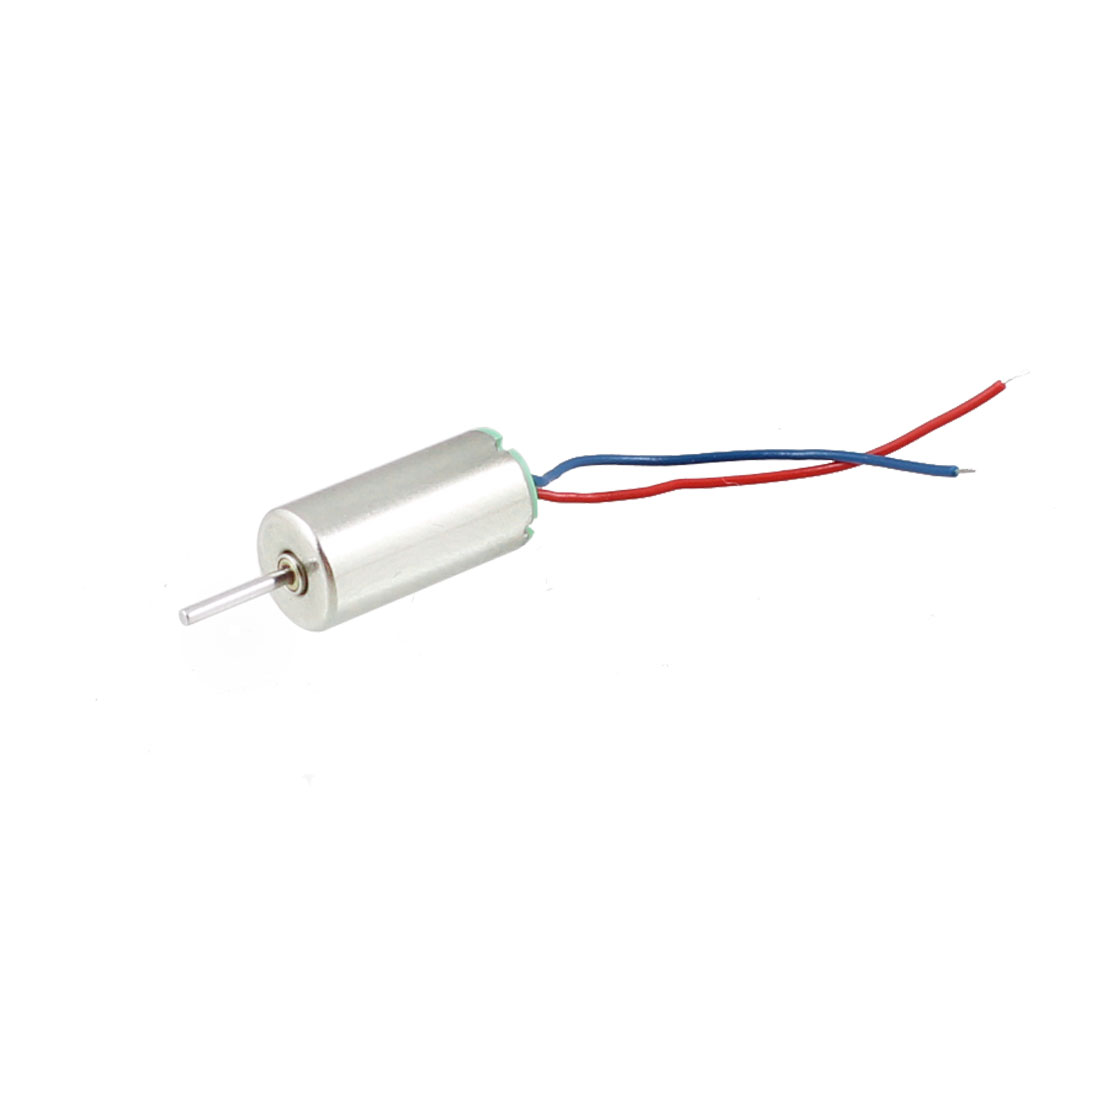 Model Aircraft 40000RPM Output Speed DC Coreless Motor 2.4V 30mA